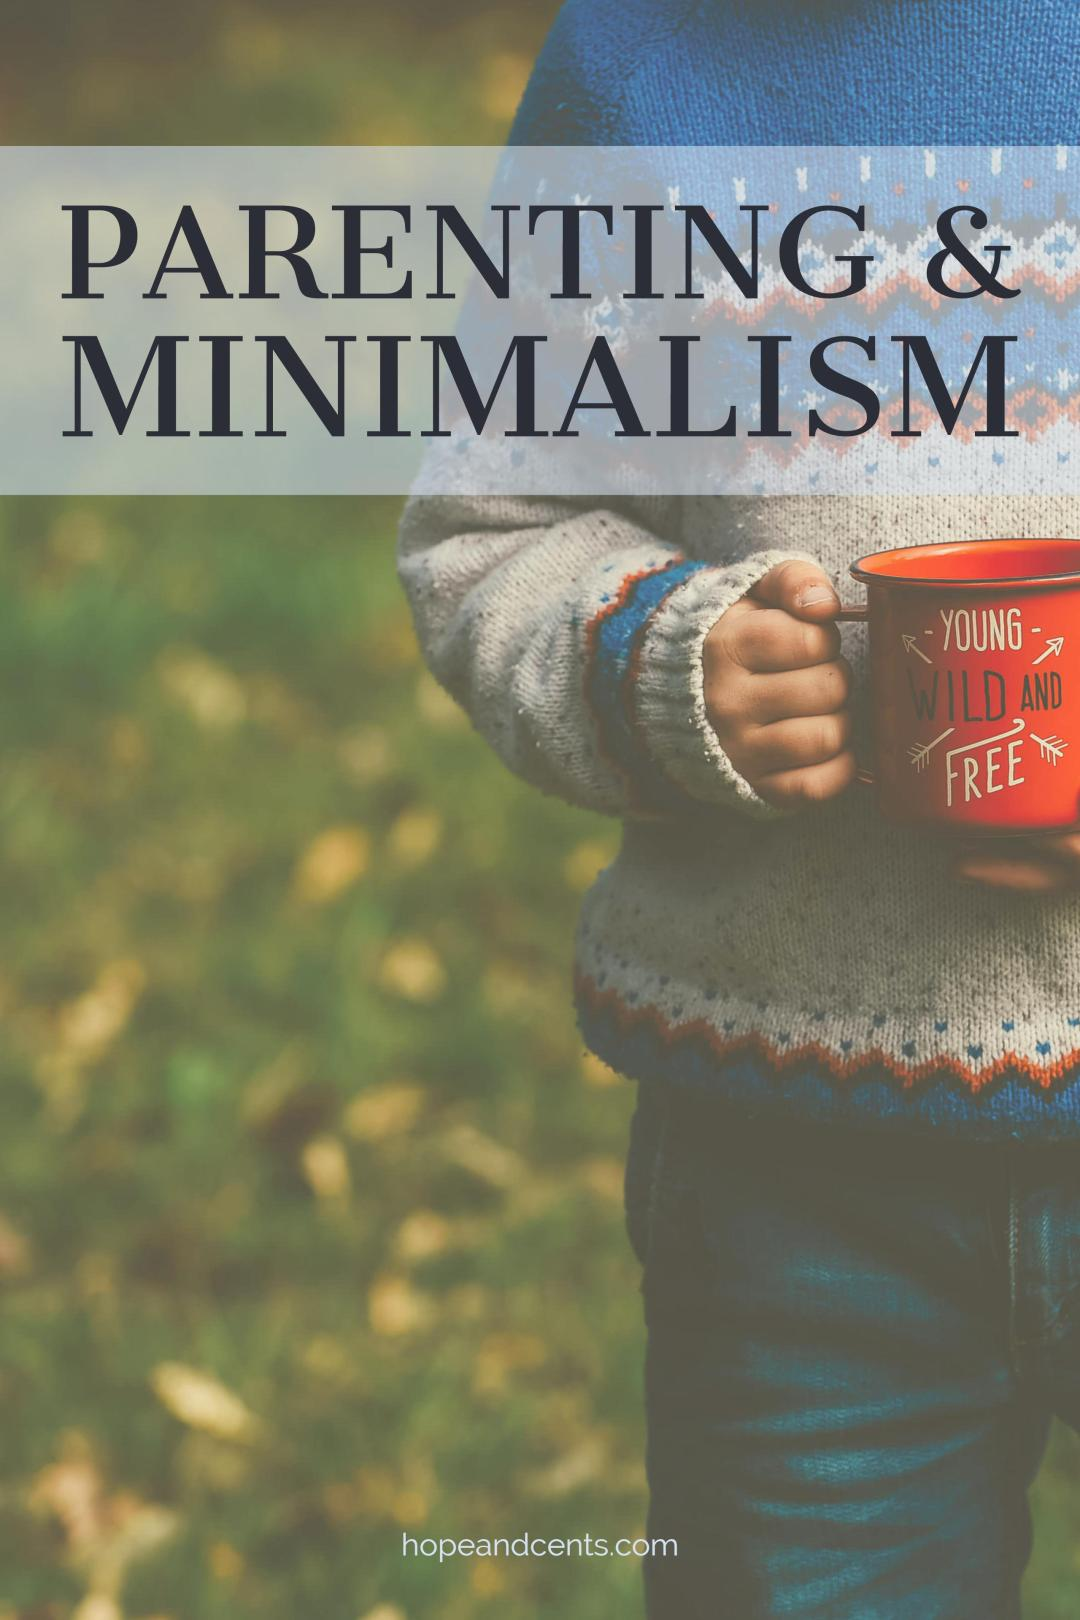 How do minimalism and parenting mix? Is it possible to pare things down when kids just want more, more, more? #parenting #minimlism #minimalistparenting